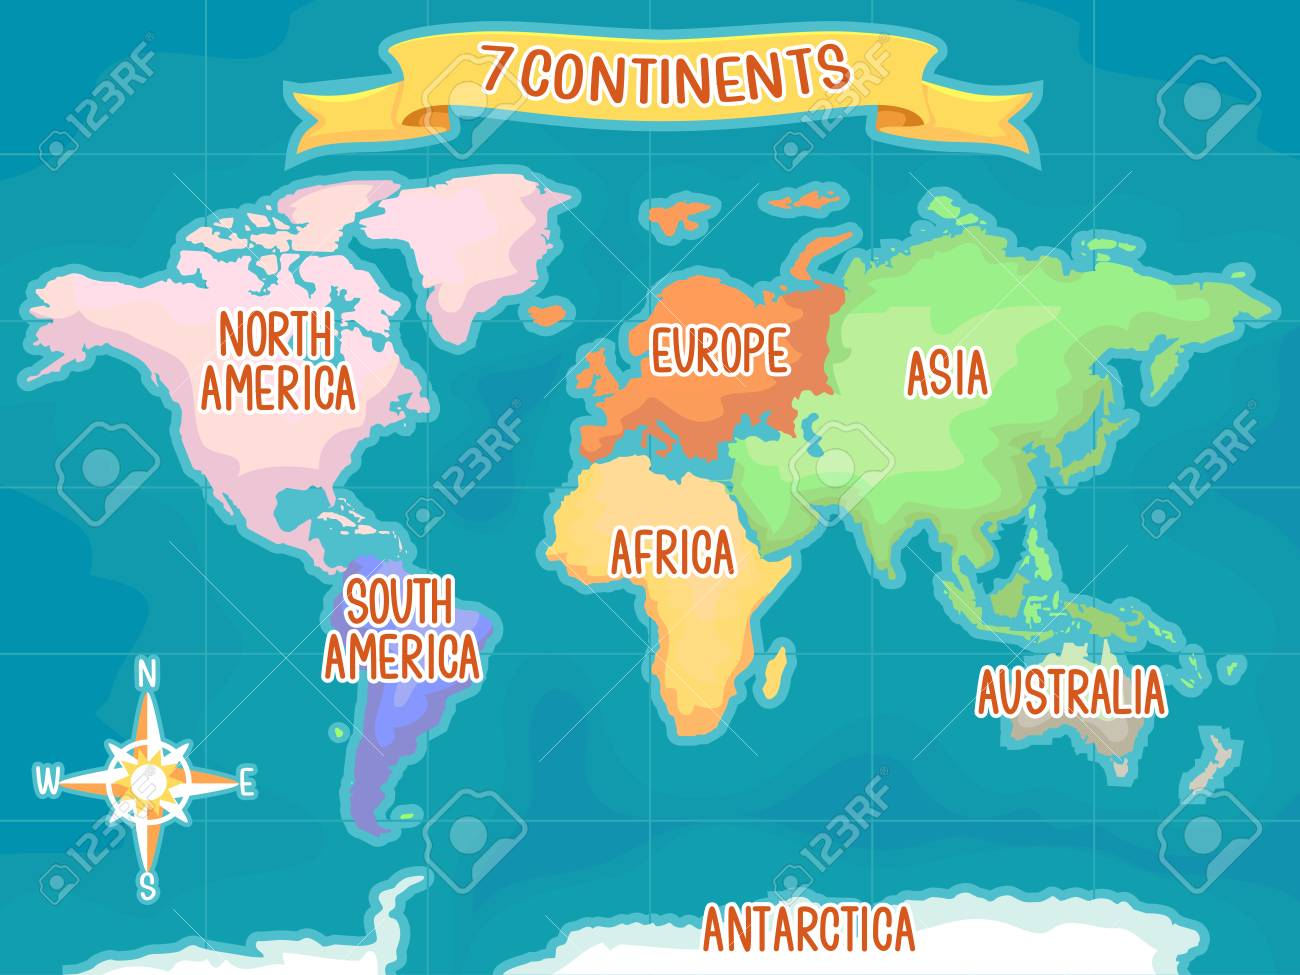 Colorful illustration featuring a world map highlighting the stock colorful illustration featuring a world map highlighting the seven continents stock illustration 91256625 gumiabroncs Choice Image